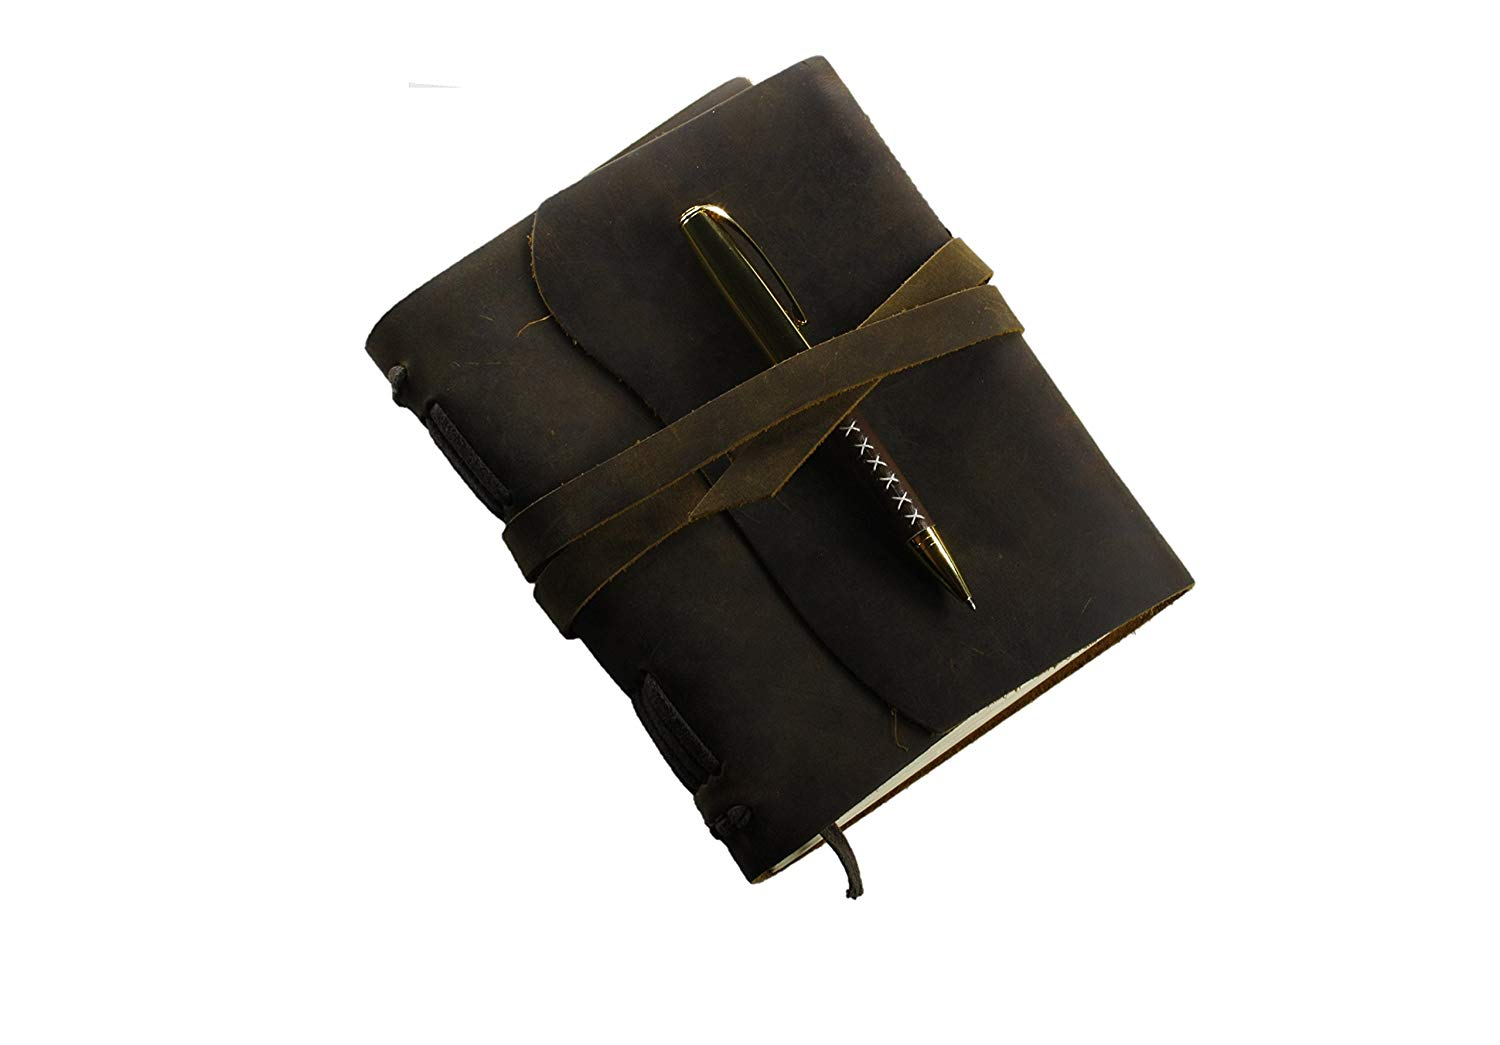 """Handmade Leather Journal, Writing Notebook, Leather Journal - 7.5"""" x 5.5"""", Unlined Diary, Travel Notebook, Sketchbook,with Calendar."""